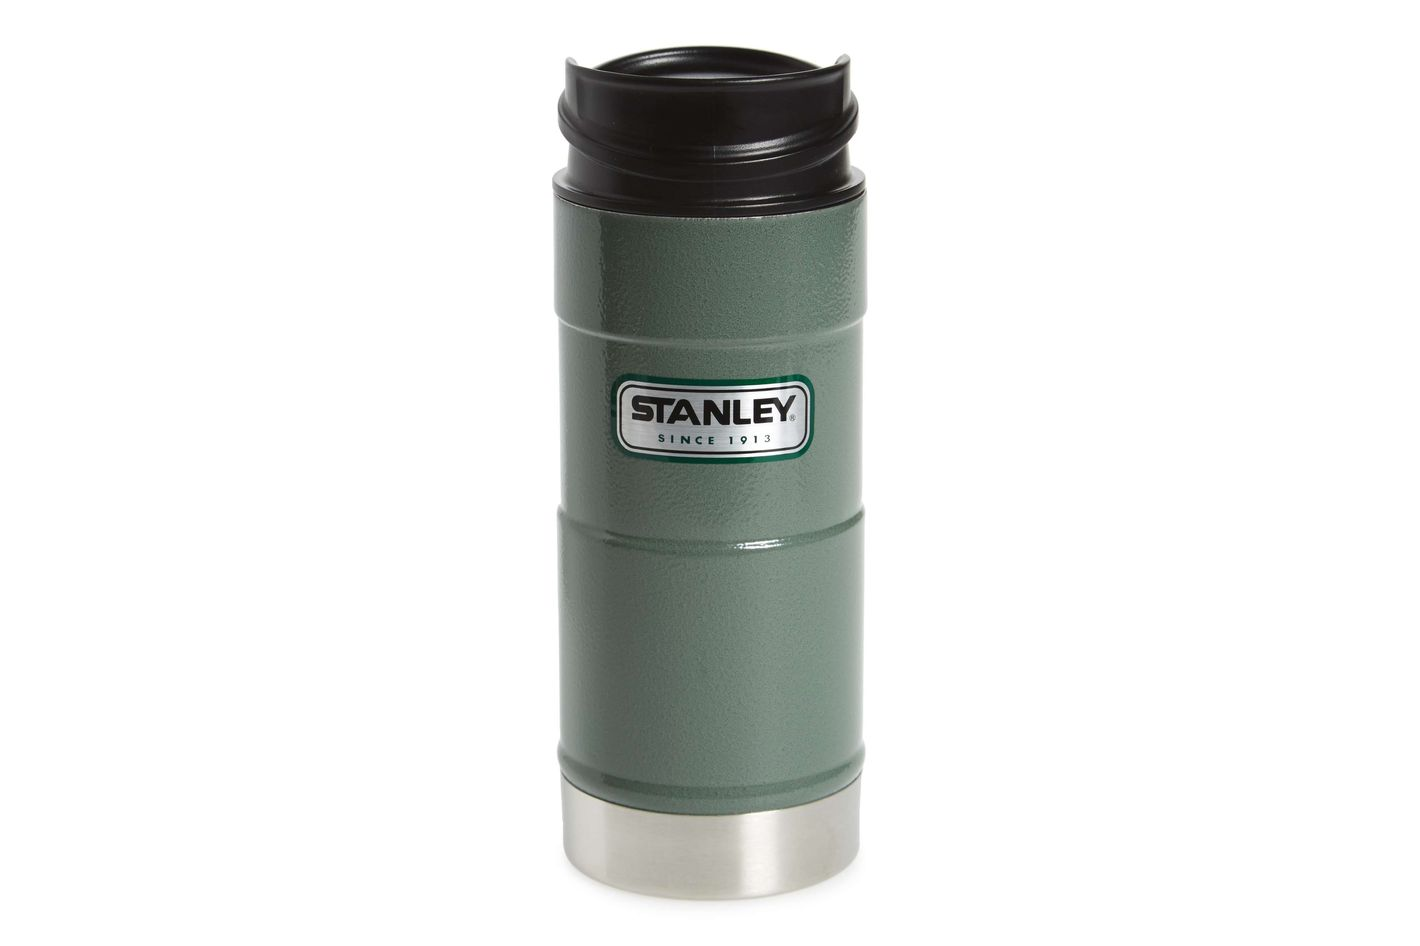 Thermos Vacuum On Stanley And Flasks Sale f7Yb6gyv